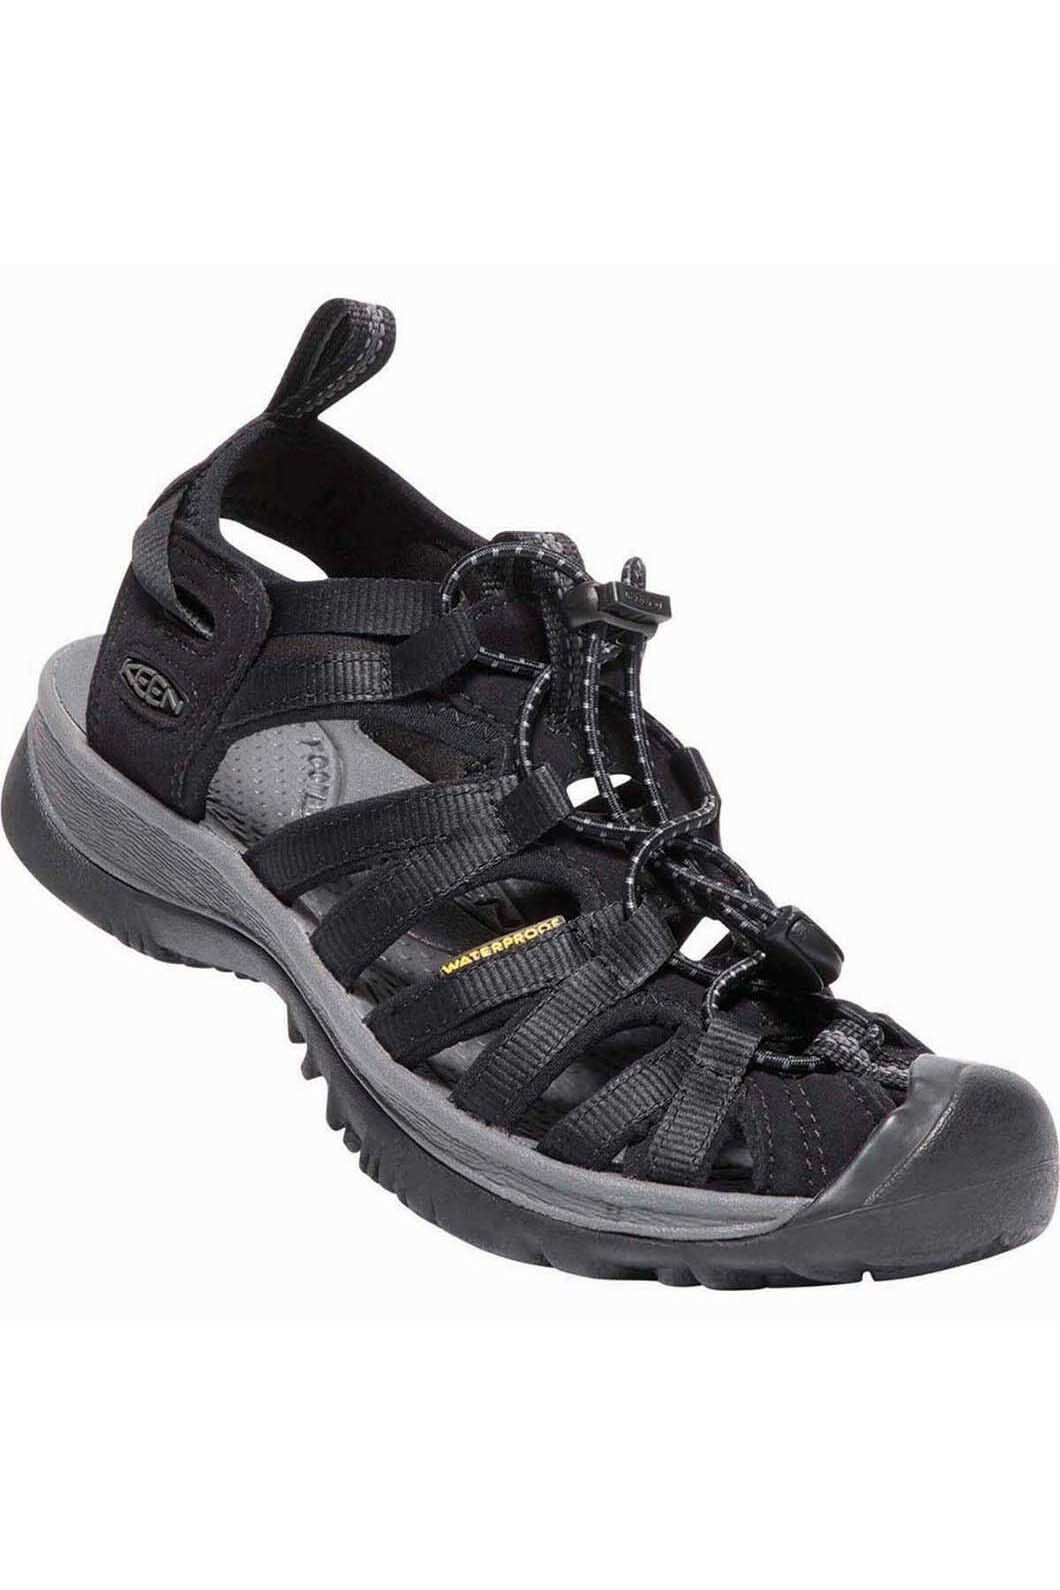 Keen Whisper Sandals — Women's, Black/Magnet, hi-res